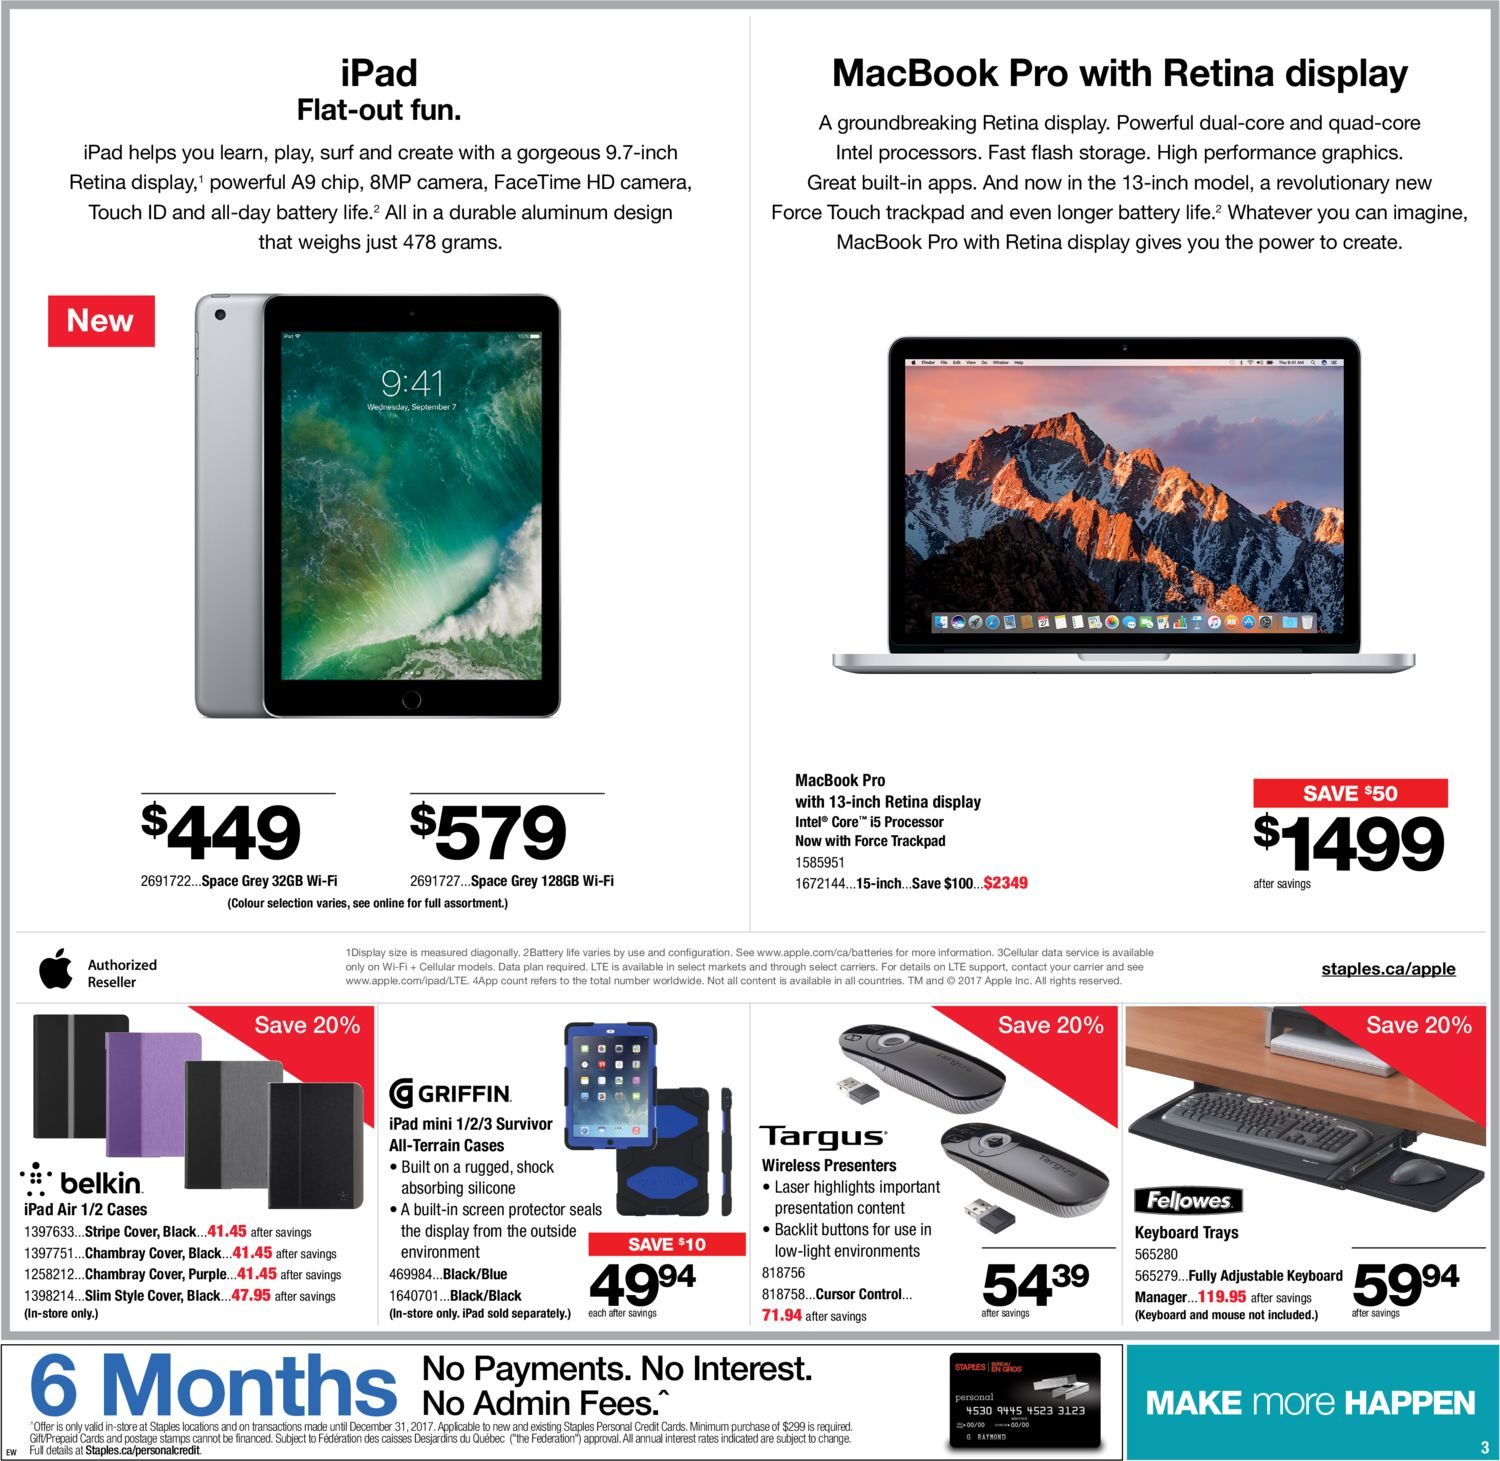 sears essay Sears and k-mart are being affected by the altering retail landscape where shoppers are traveling online for convenience and happening better monetary values also read enron: the smartest guys in the room essay sample in order to be successful sears holdings must seek to acquire on top of.